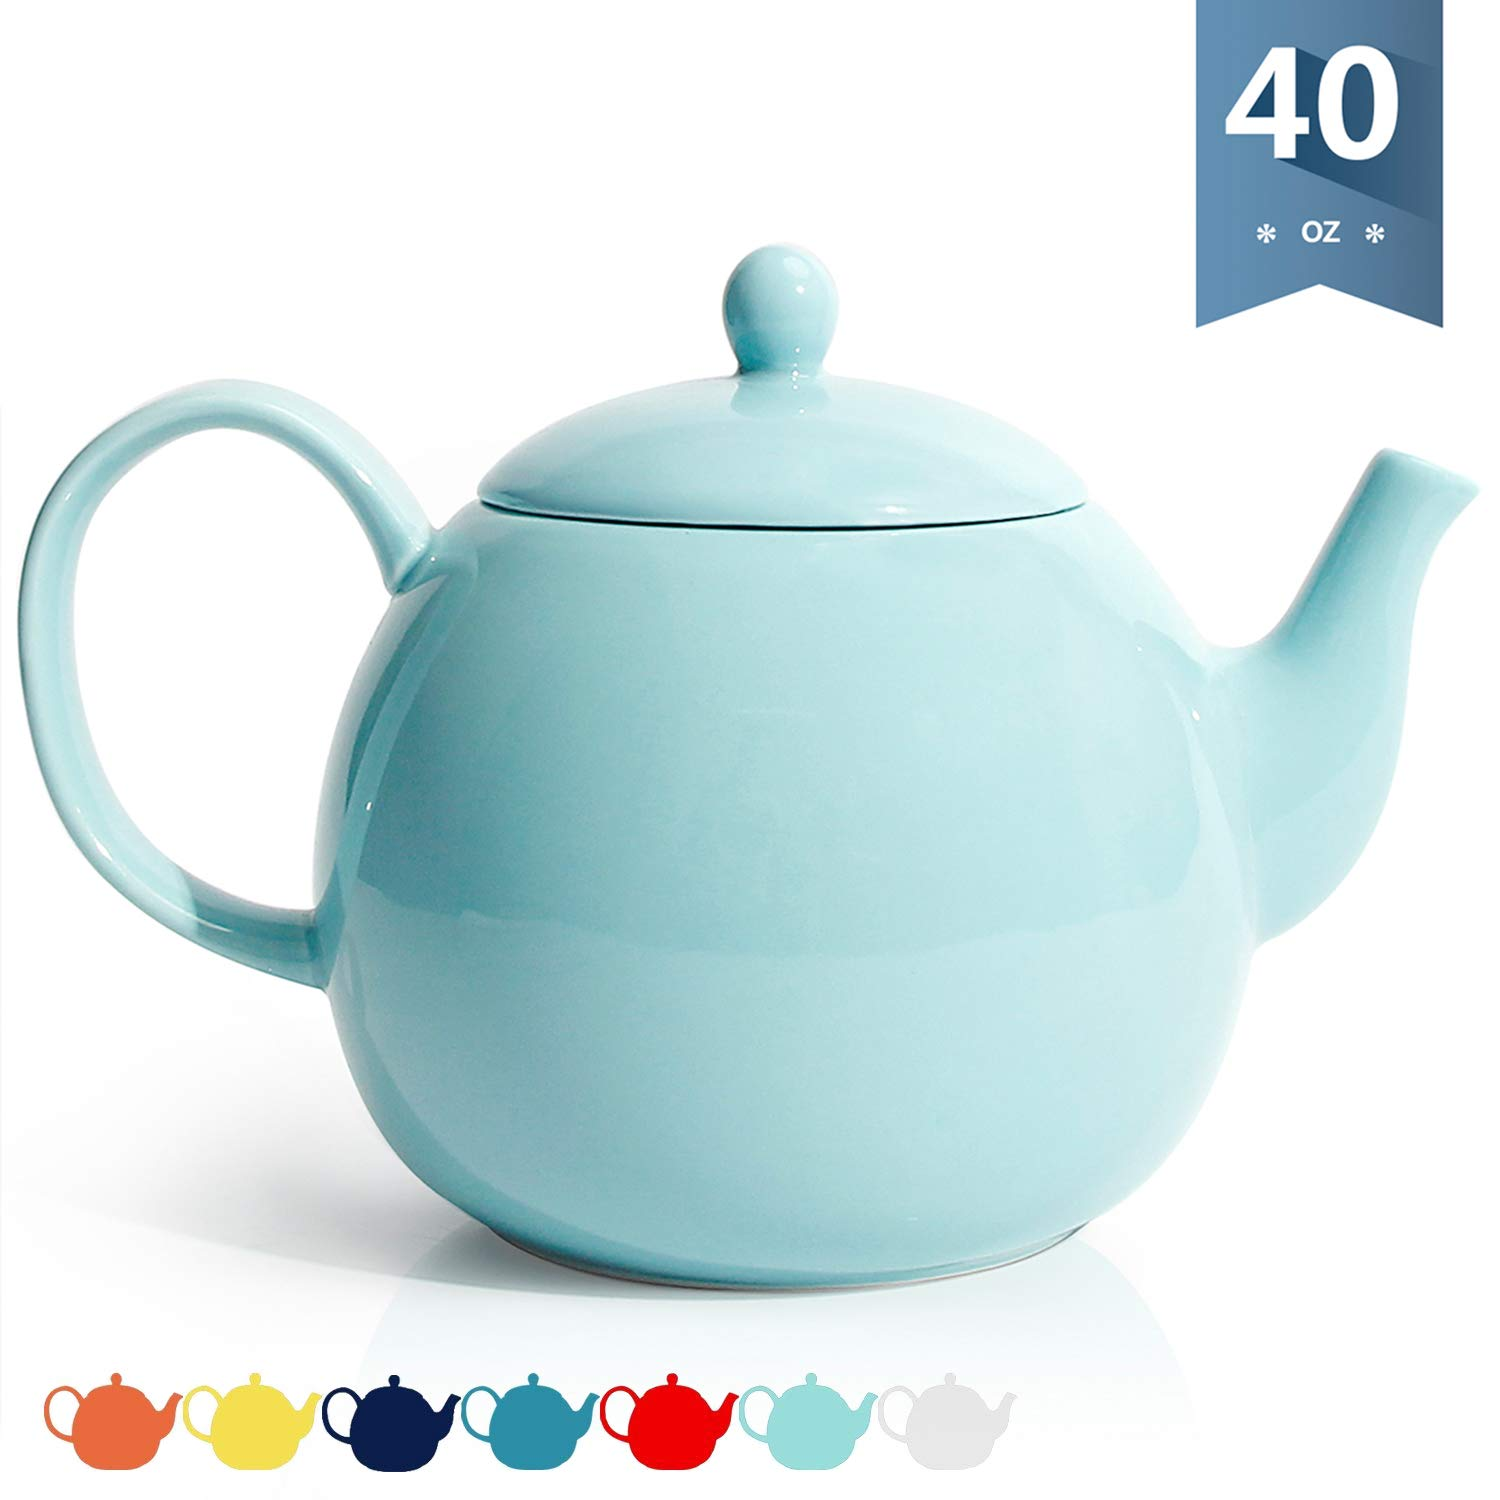 Sweese 220.102 Porcelain Teapot, 40 Ounce Tea Pot - Large Enough for 5 Cups, Turquoise